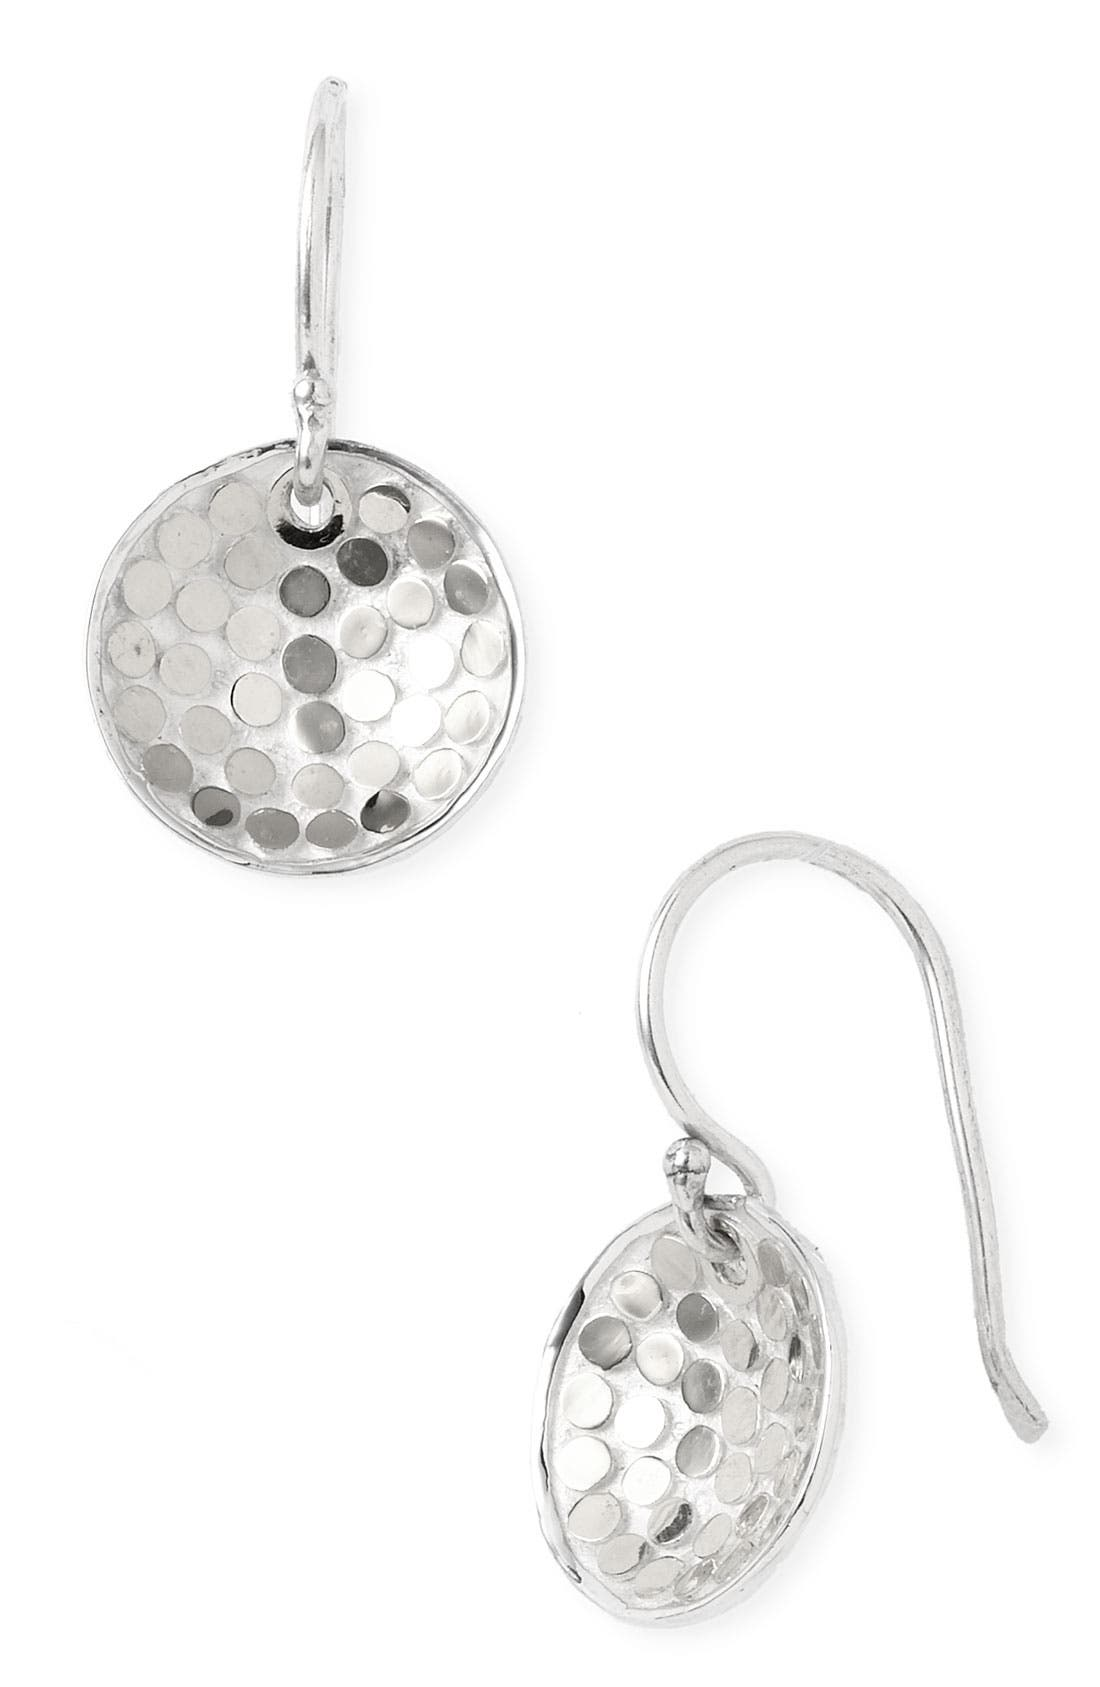 Main Image - Anna Beck 'Bali' Dish Earrings